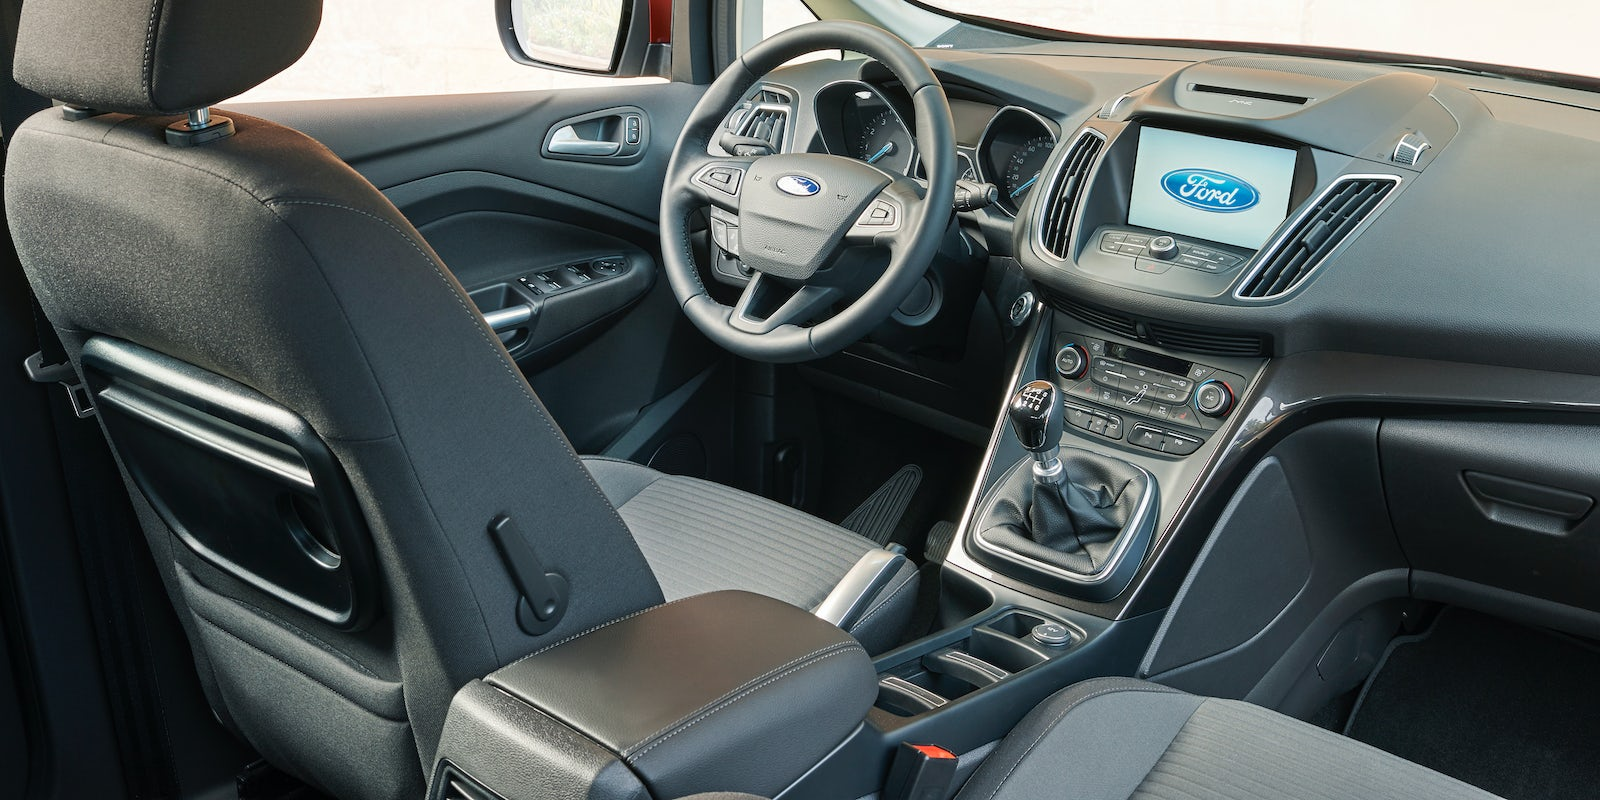 ford c max interior and infotainment carwow. Black Bedroom Furniture Sets. Home Design Ideas